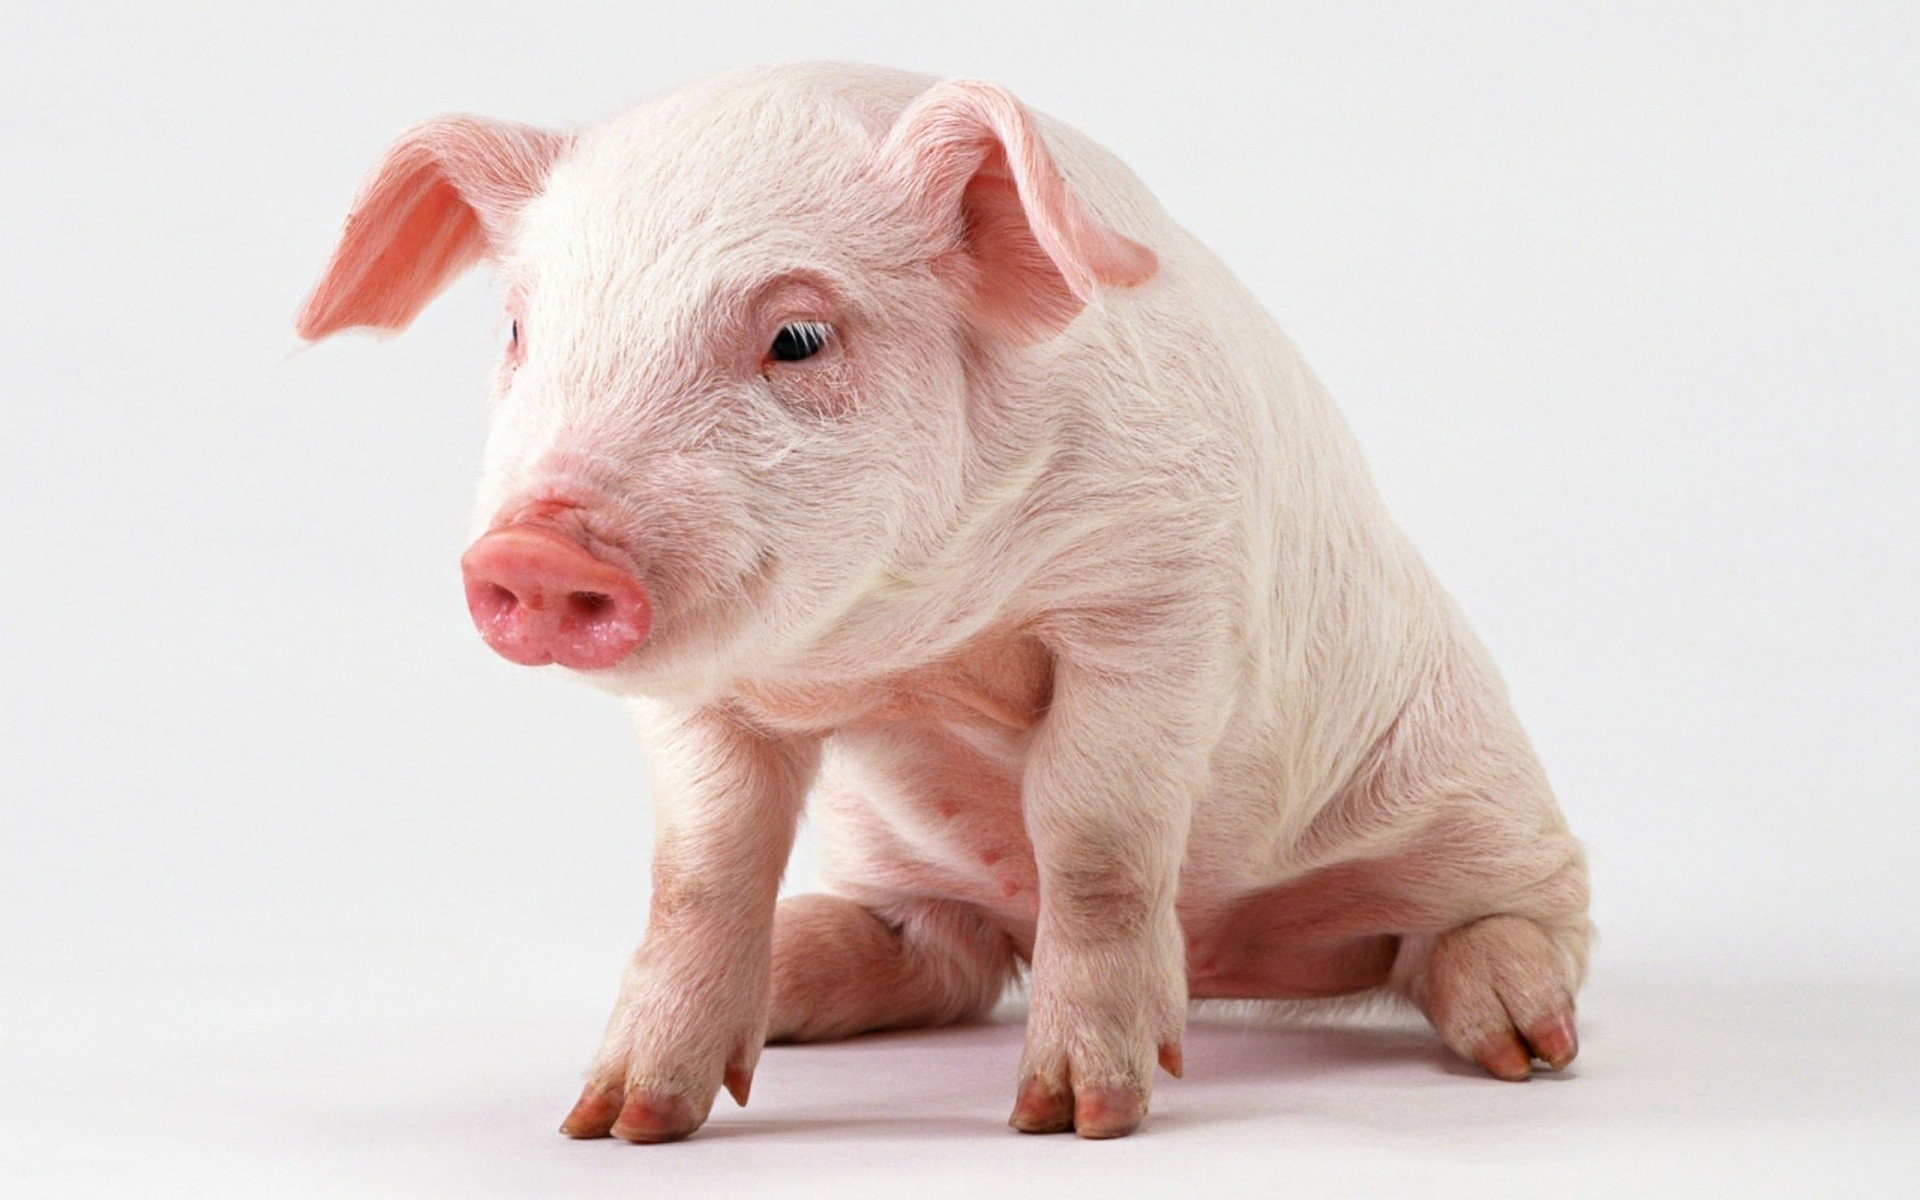 Res: 1920x1200, Baby Pig wallpaper ideas about Pig Wallpaper on Pinterest Pig illustration